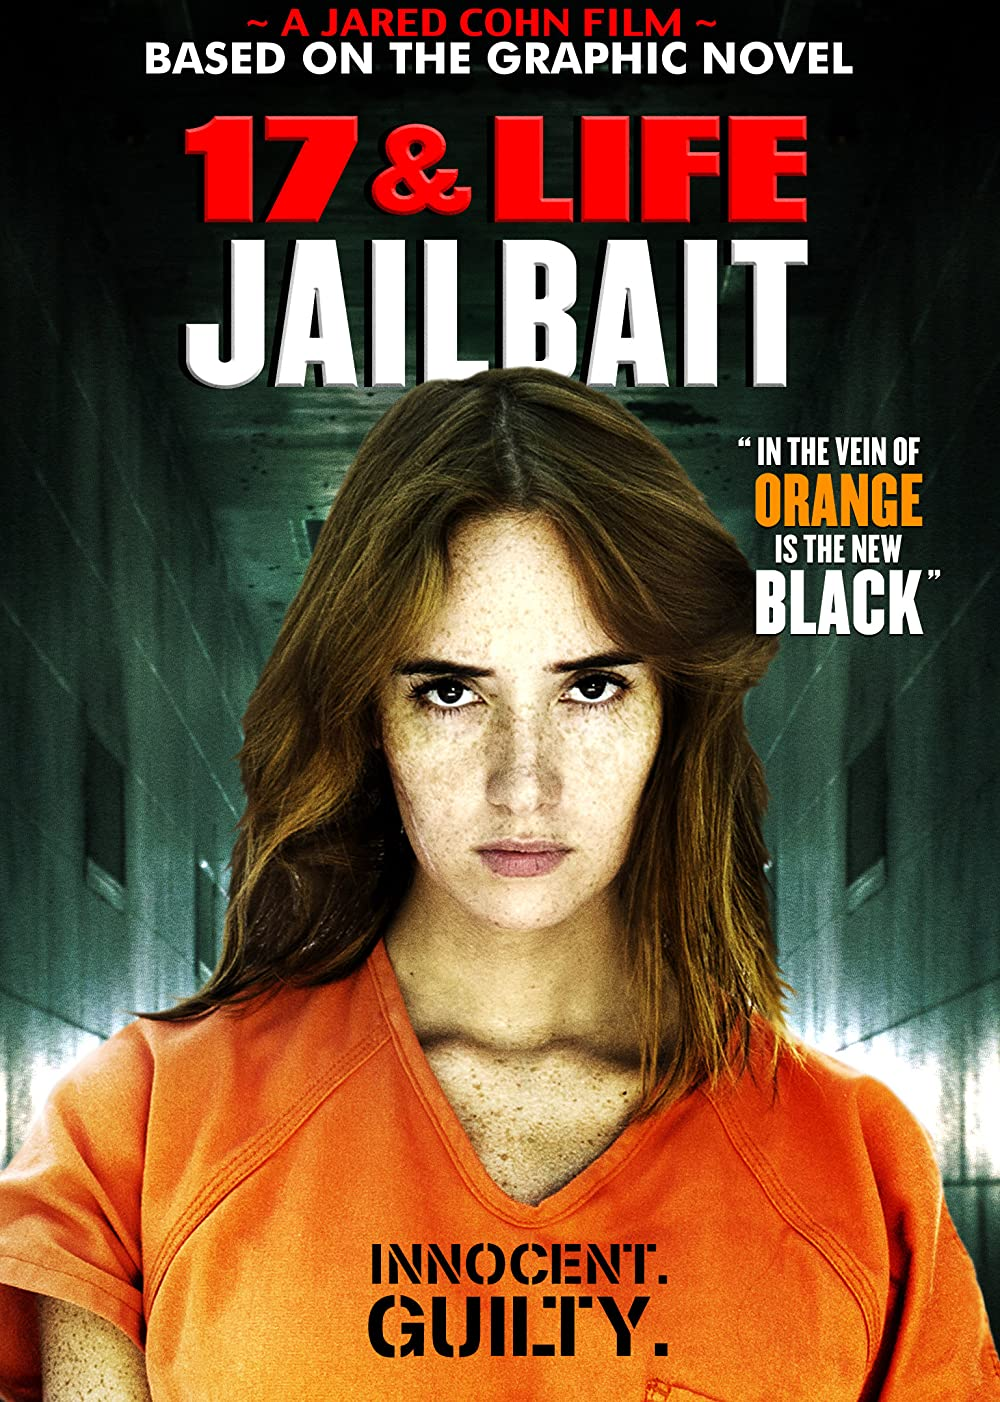 18+ Jailbait 2014 Hindi Dual Audio 720p UNRATED BluRay ESubs 1.04GB Download